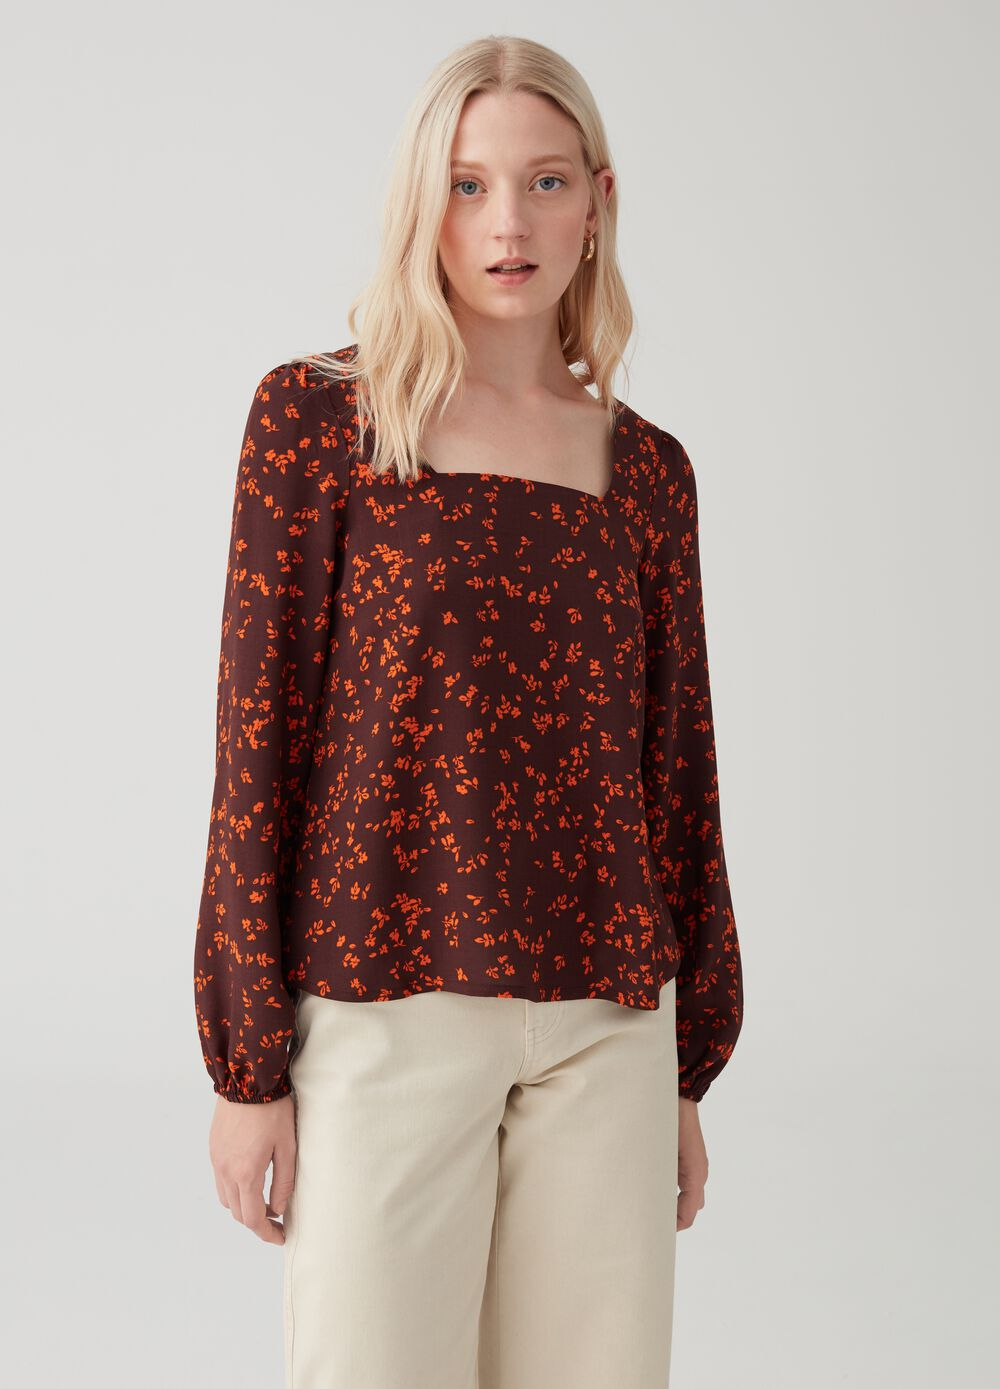 100% viscose blouse with square neckline